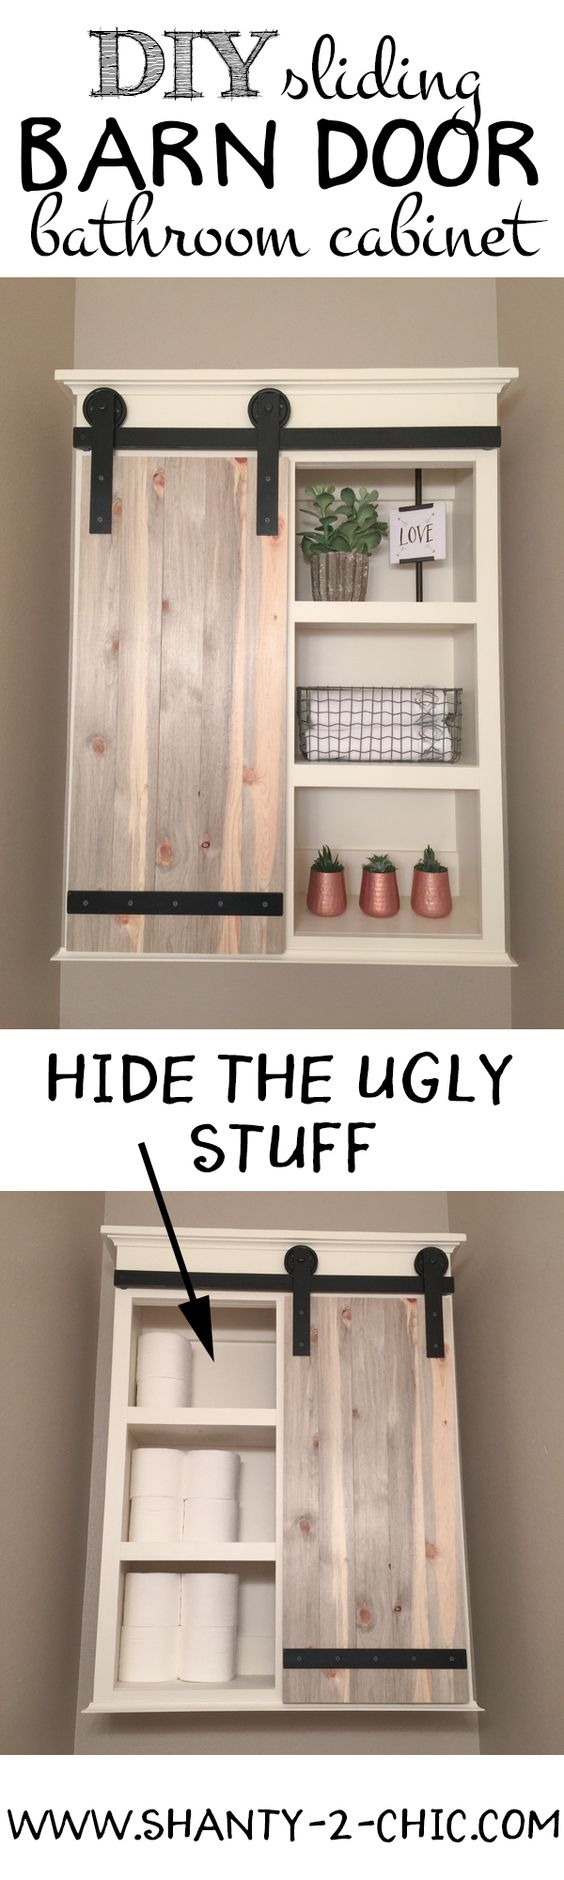 This DIY sliding barn door cabinet is the perfect mix of open shelving and hidden storage for the ugly stuff.